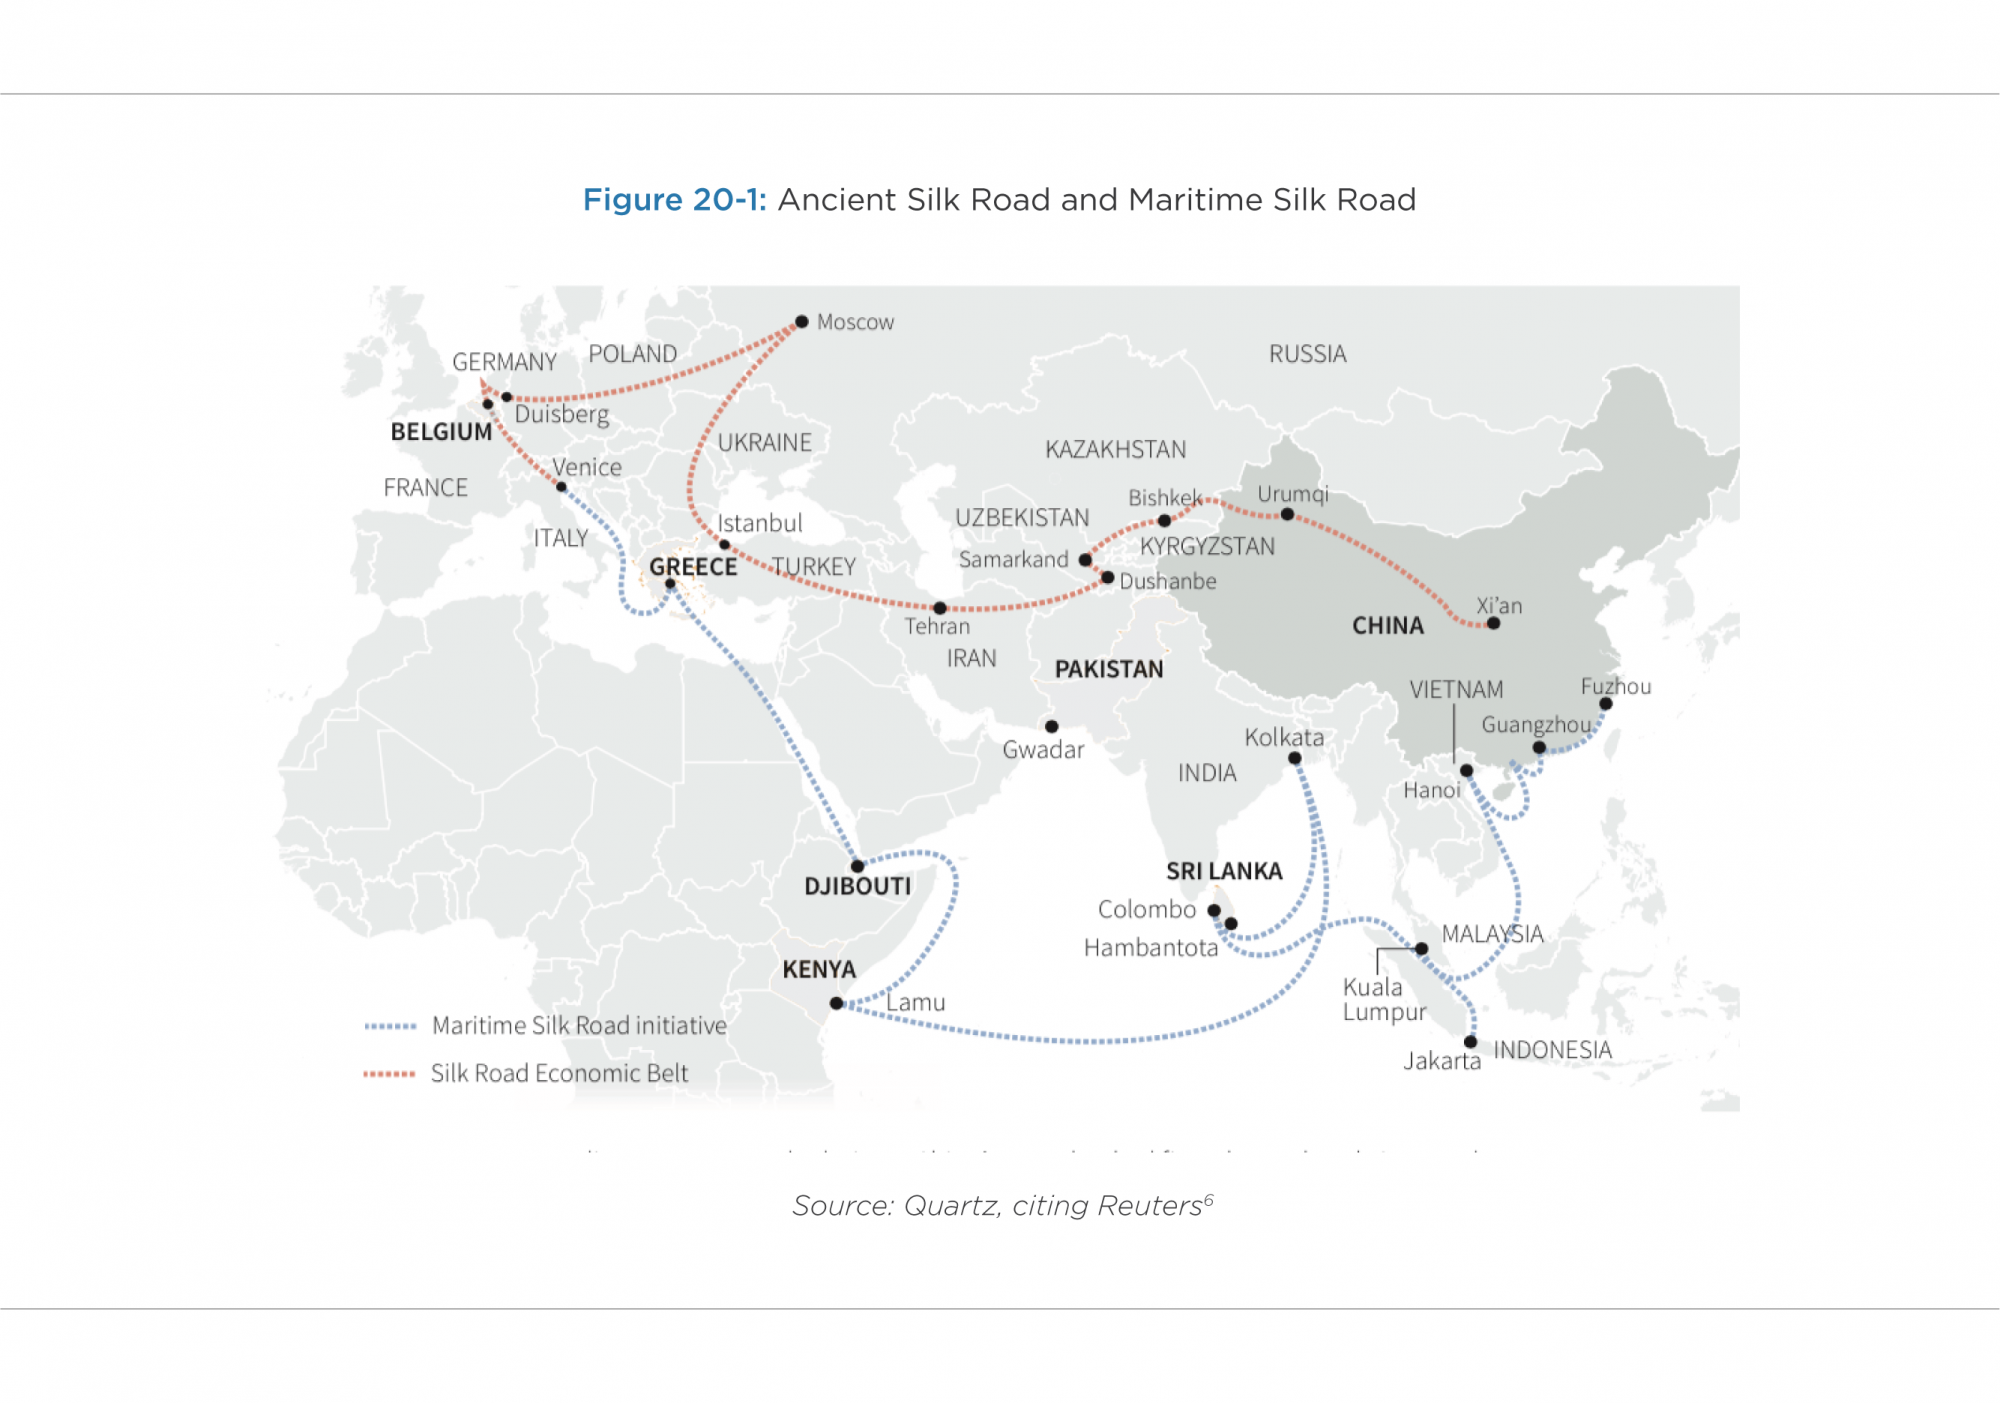 "[1] For background on the Belt and Road Initiative, see the Chinese government's Belt and Road Portal; State Council, Action plan on the Belt and Road Initiative (March 30, 2015); Yuen Yuen Ang, ""Demystifying Belt and Road,"" Foreign Affairs (May 22, 2019); Nadège Rolland, A Concise Guide to the Belt and Road Initiative, National Bureau of Asian Research (April 11, 2019); Andrew Chatzky and James McBride, ""China's Massive Belt and Road Initiative,"" Council on Foreign Relations (May 21, 2019); David Sandalow"